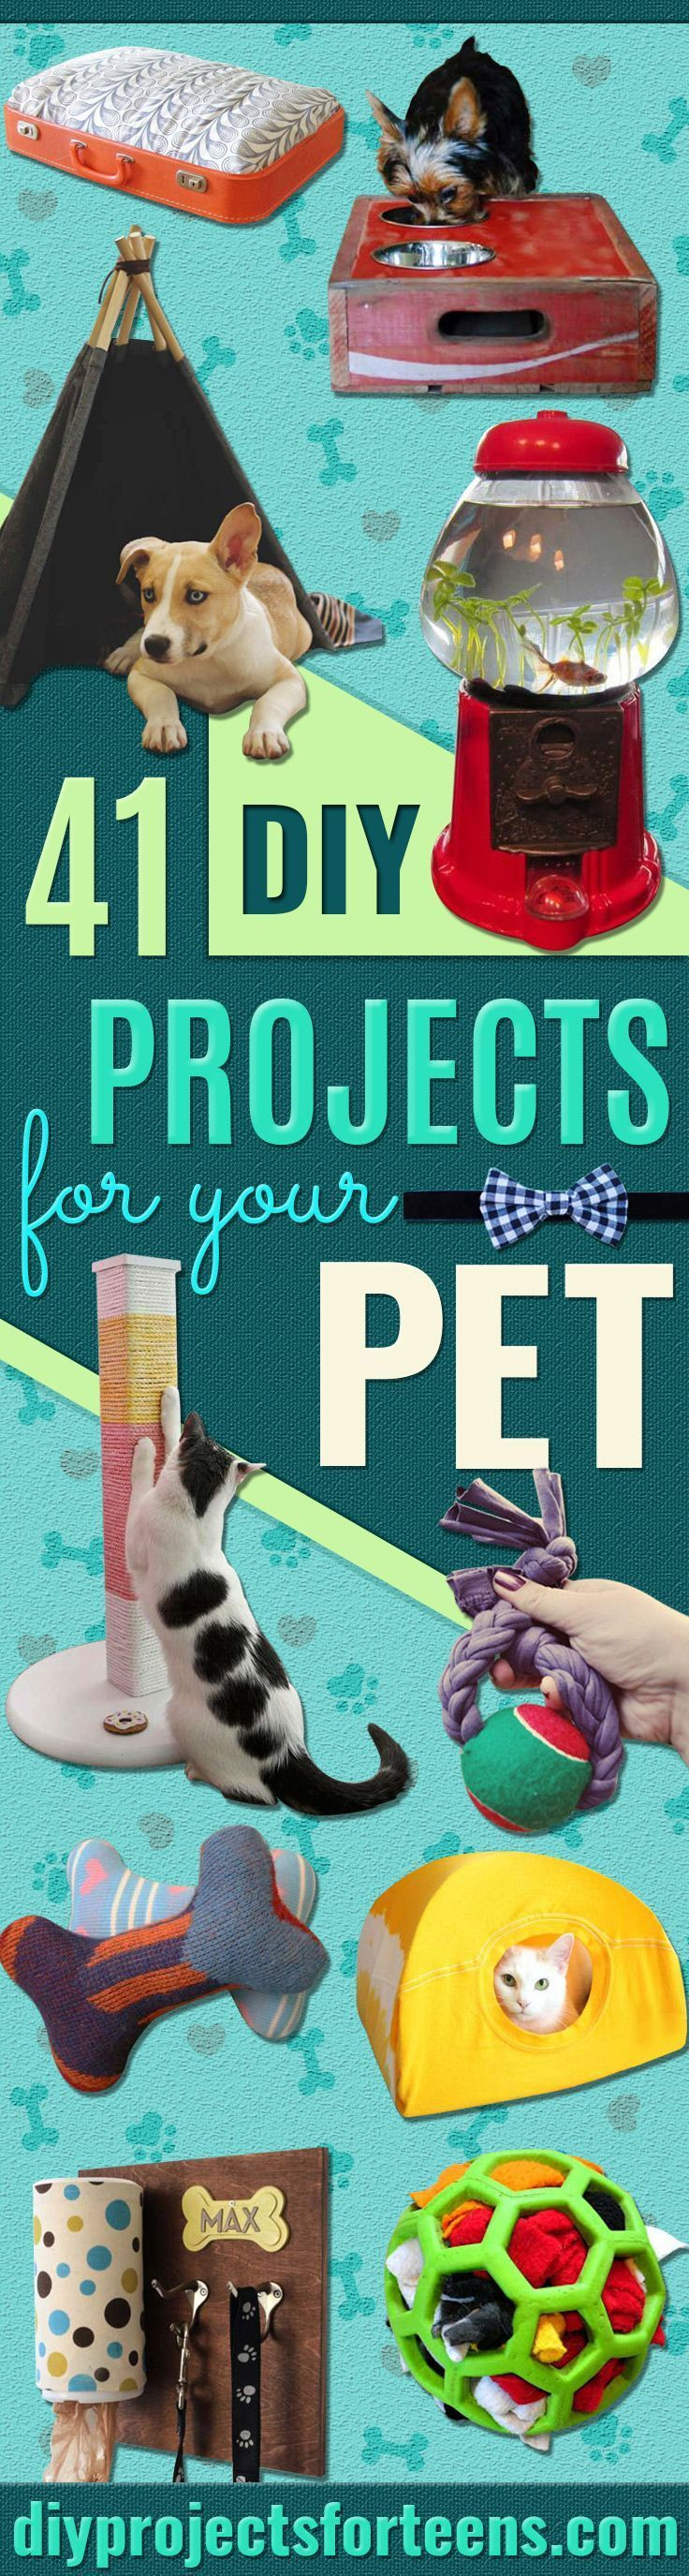 41 crafty diy projects for your pet  your pet diy cat